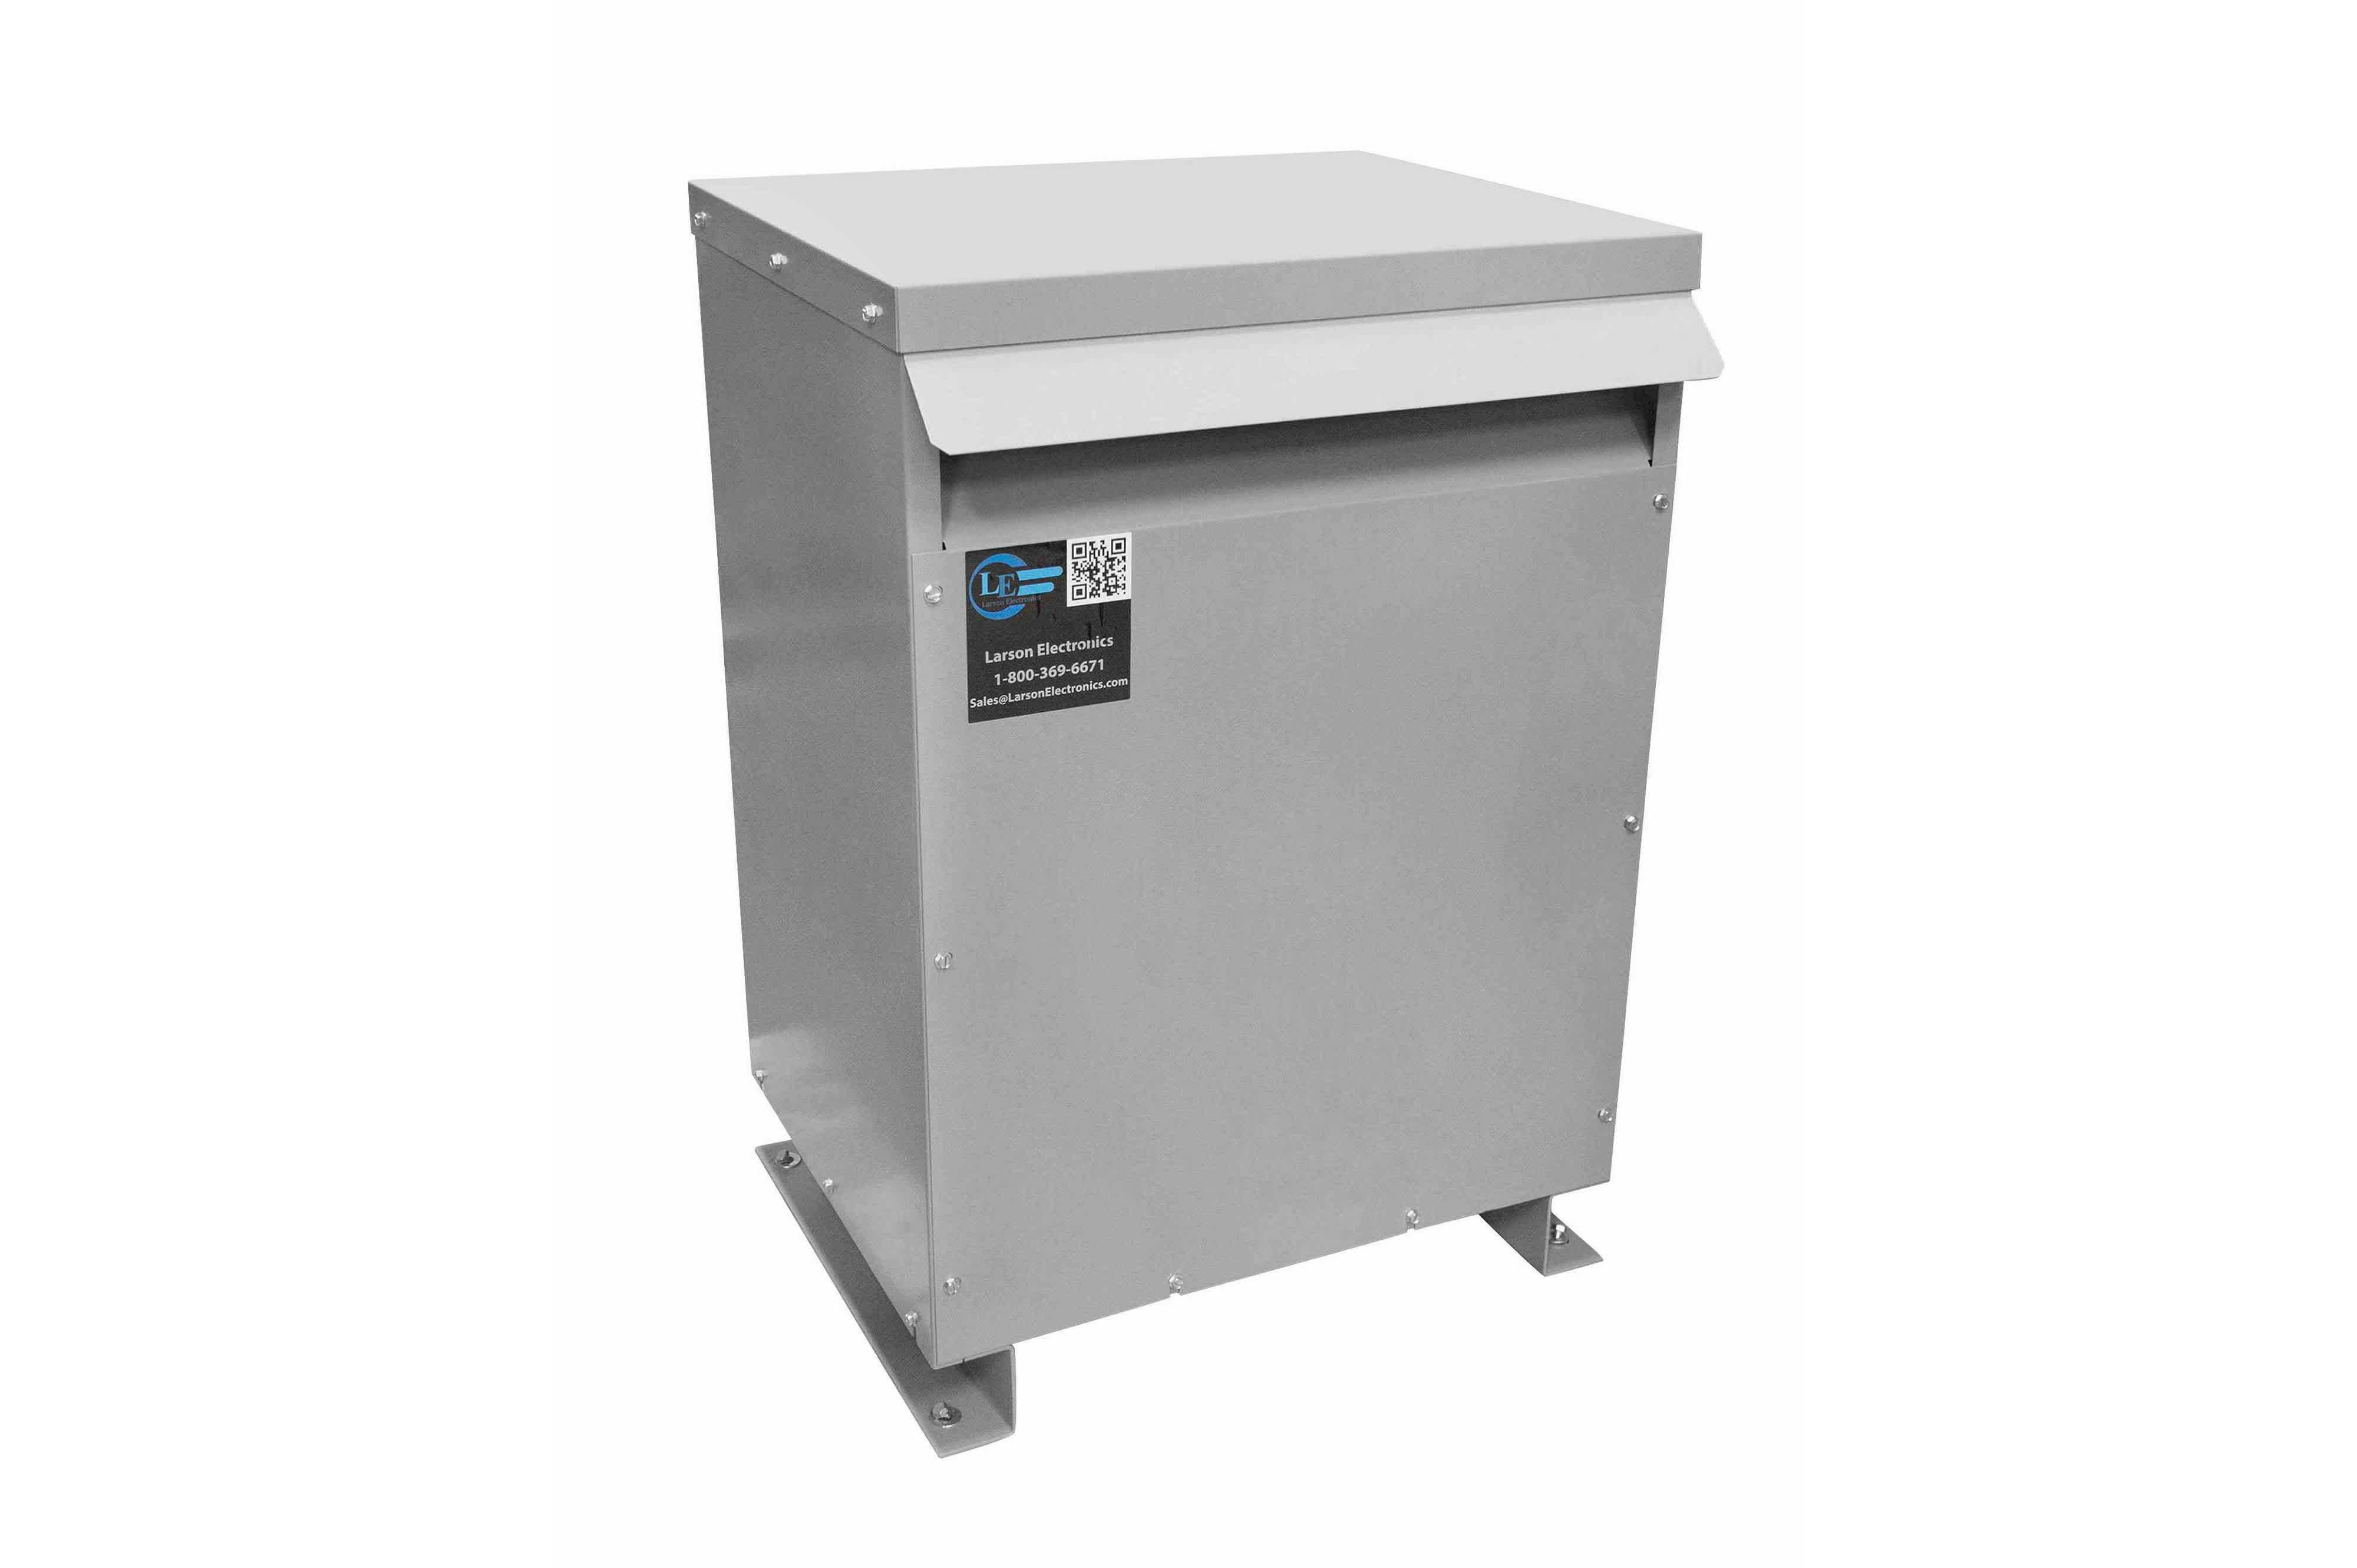 225 kVA 3PH Isolation Transformer, 208V Wye Primary, 208V Delta Secondary, N3R, Ventilated, 60 Hz